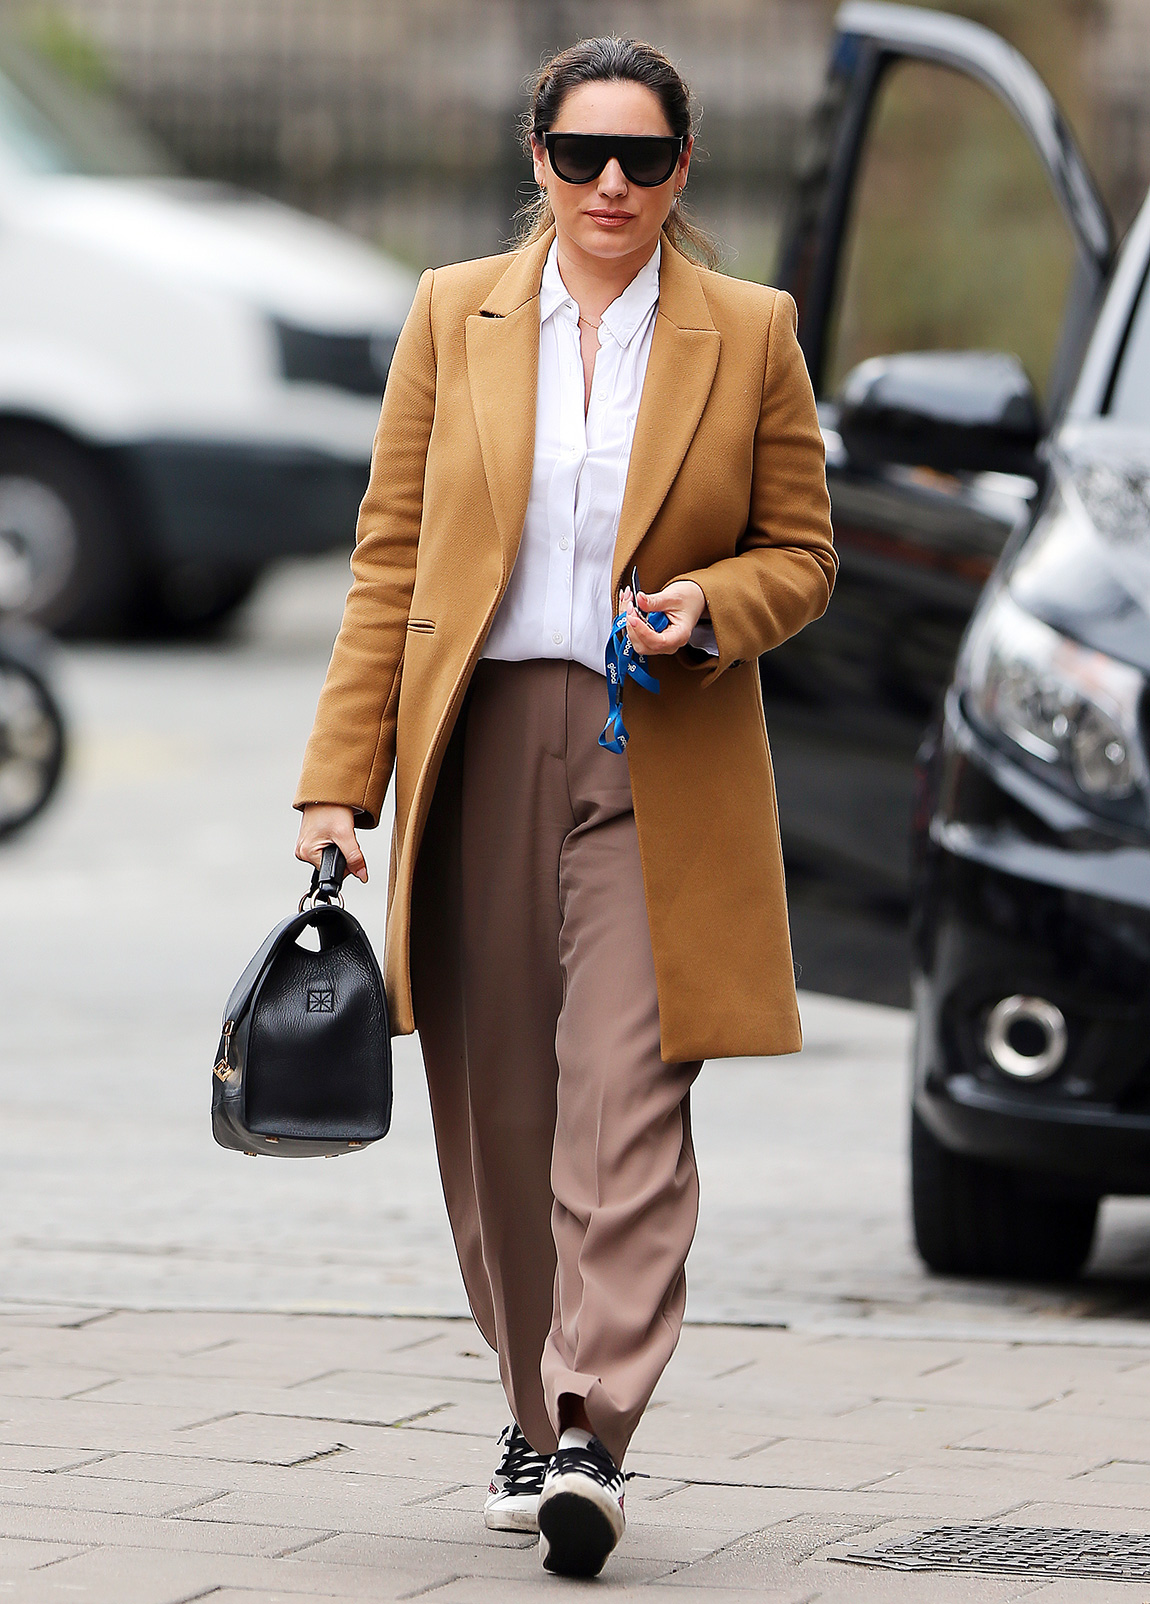 Kelly Brook wearing a long beige coat, white shirt, brown trousers and a pair of trainers arriving at Heart FM in London.